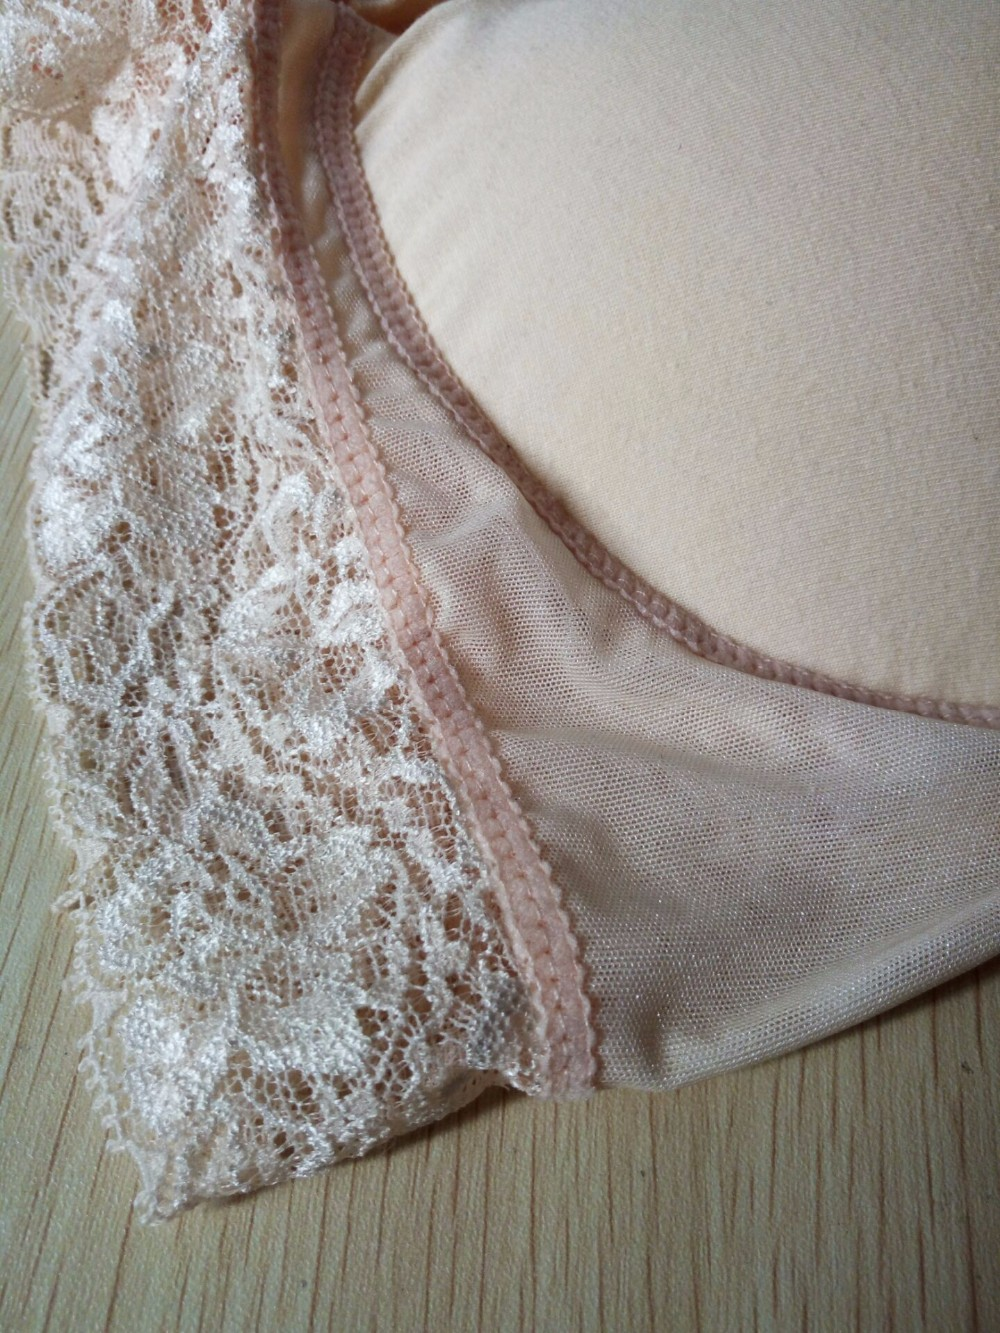 Womens Seamless Sexy Butt Lifter Padded Lace Panty Enhancer Underwear Girls lace Booty Booster Briefs 9